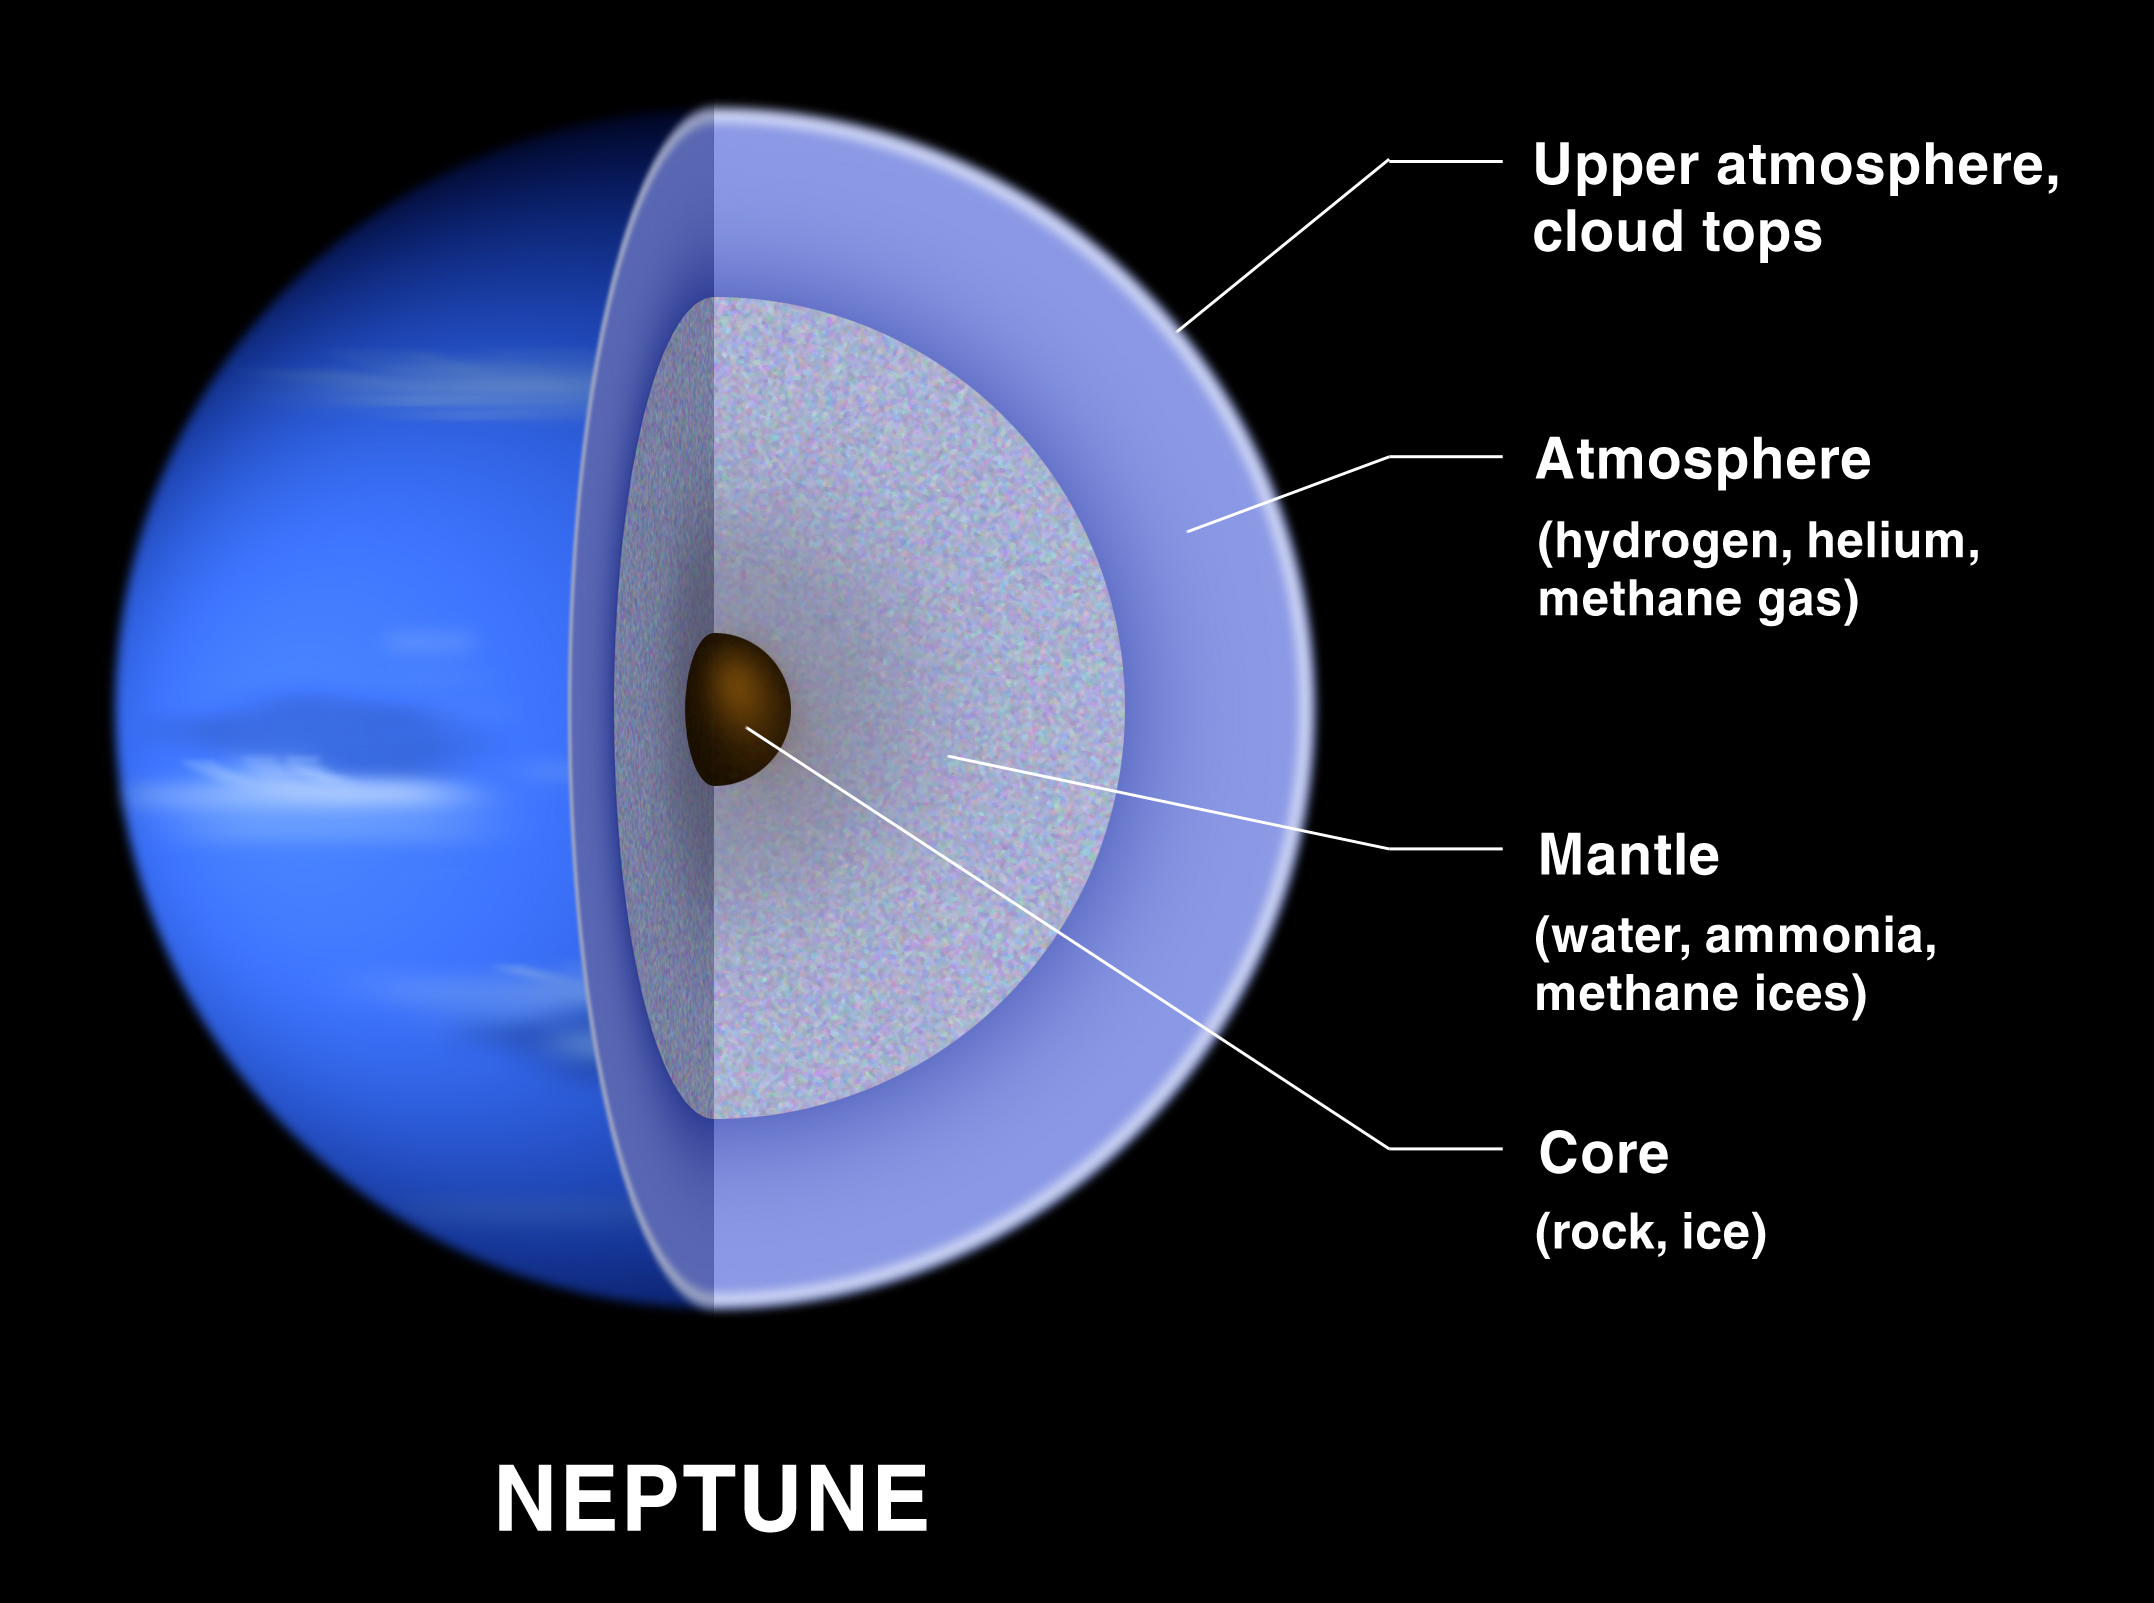 Interior layers of Neptune